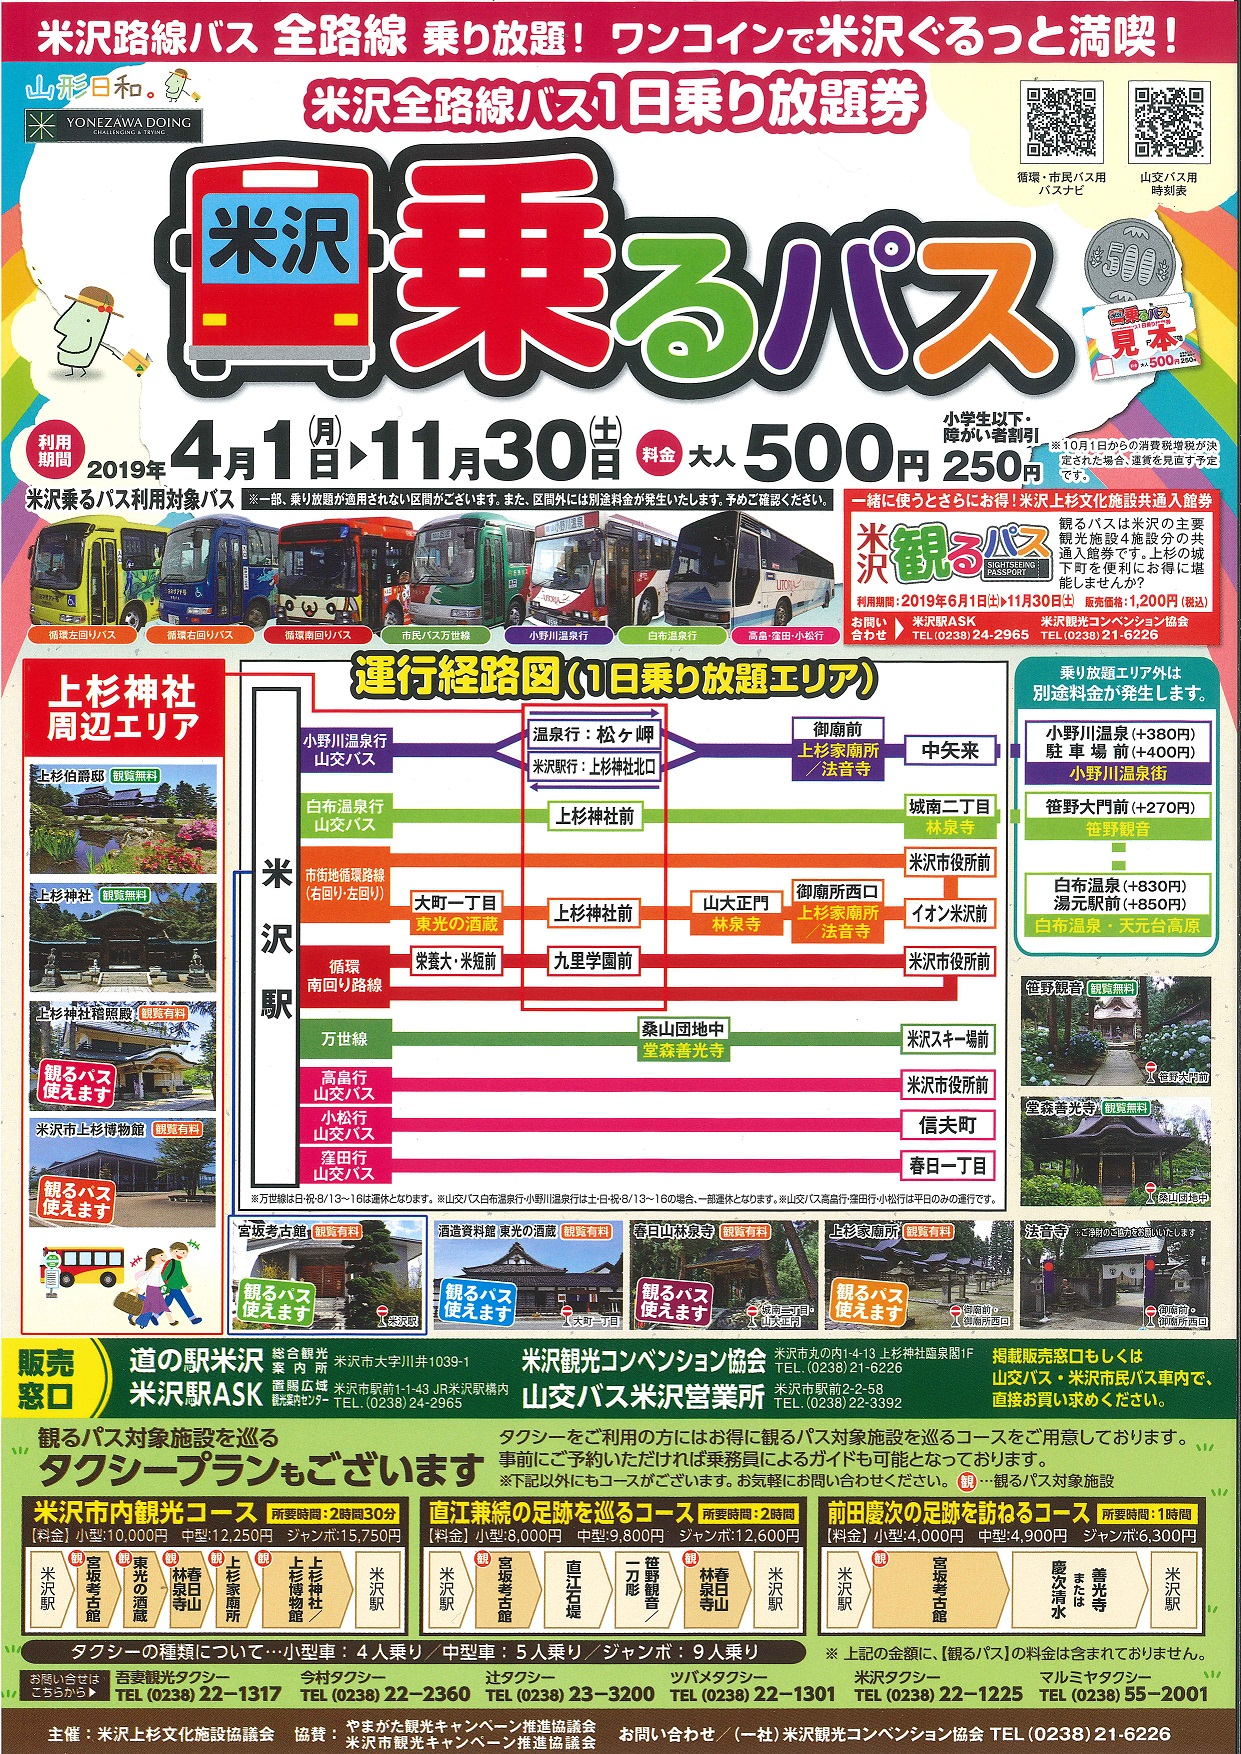 Under Yonezawa pass (all Yonezawa city route buses daily free-to-ride ticket) to get on popular sale! : Image